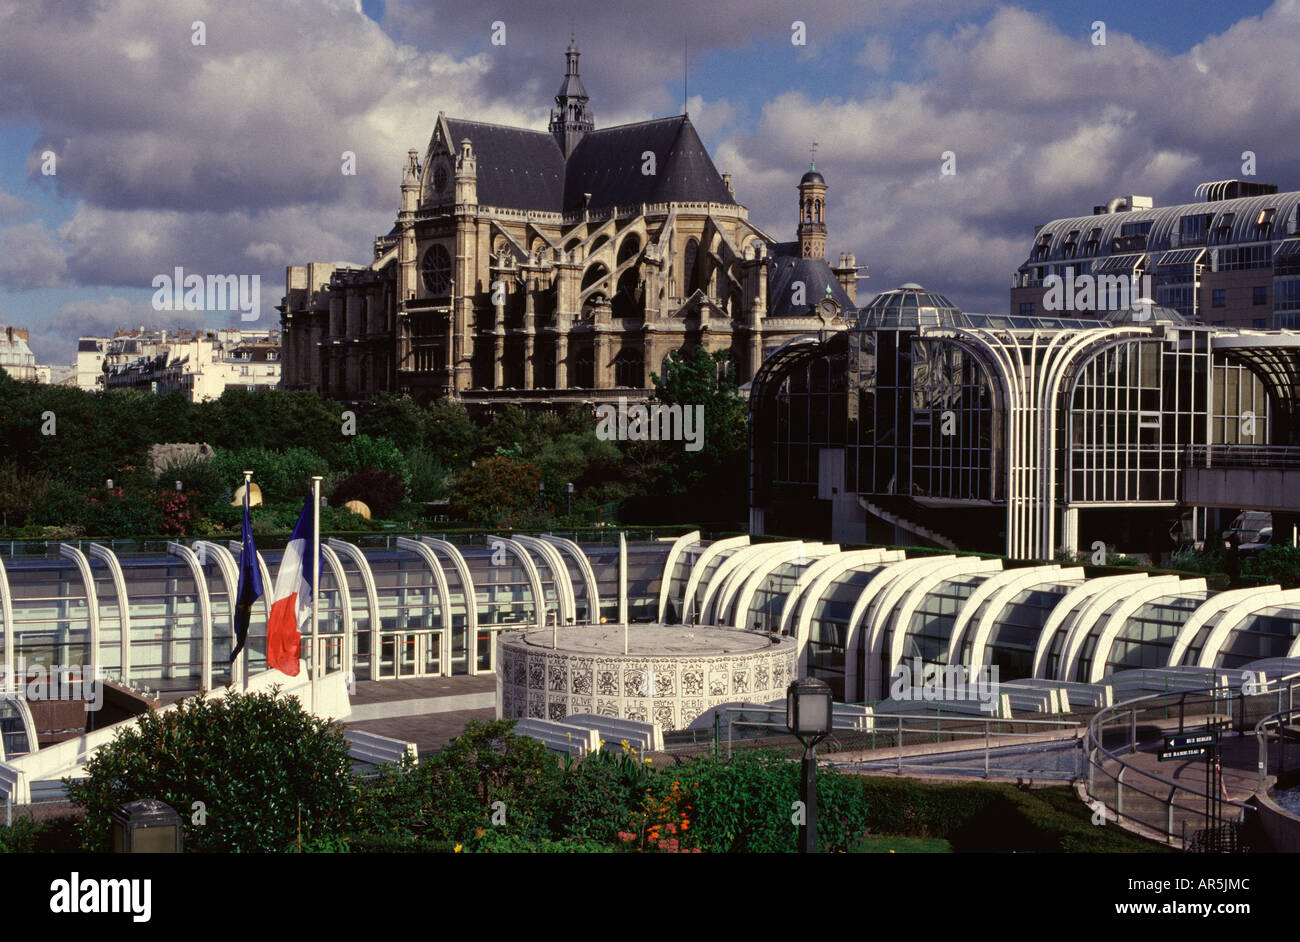 forum des halles shopping precinct with eglise saint eustache church stock photo royalty free. Black Bedroom Furniture Sets. Home Design Ideas